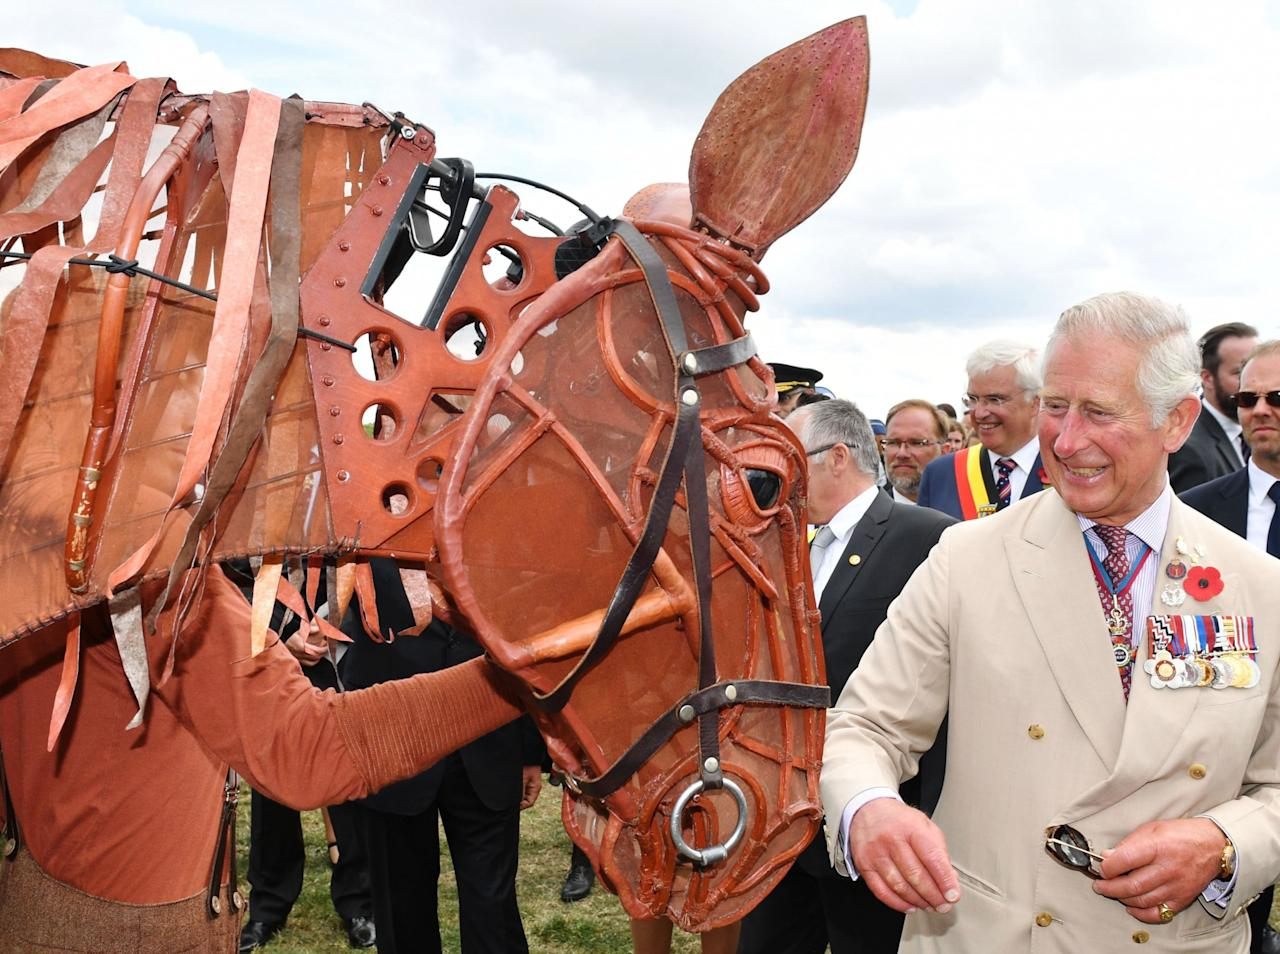 <p></p><p><span>Prince Charles meets a mechanical War Horse a remembrance event for the </span><span>100th Anniversary of Passchendaele. (Rex features)</span> </p><p></p>